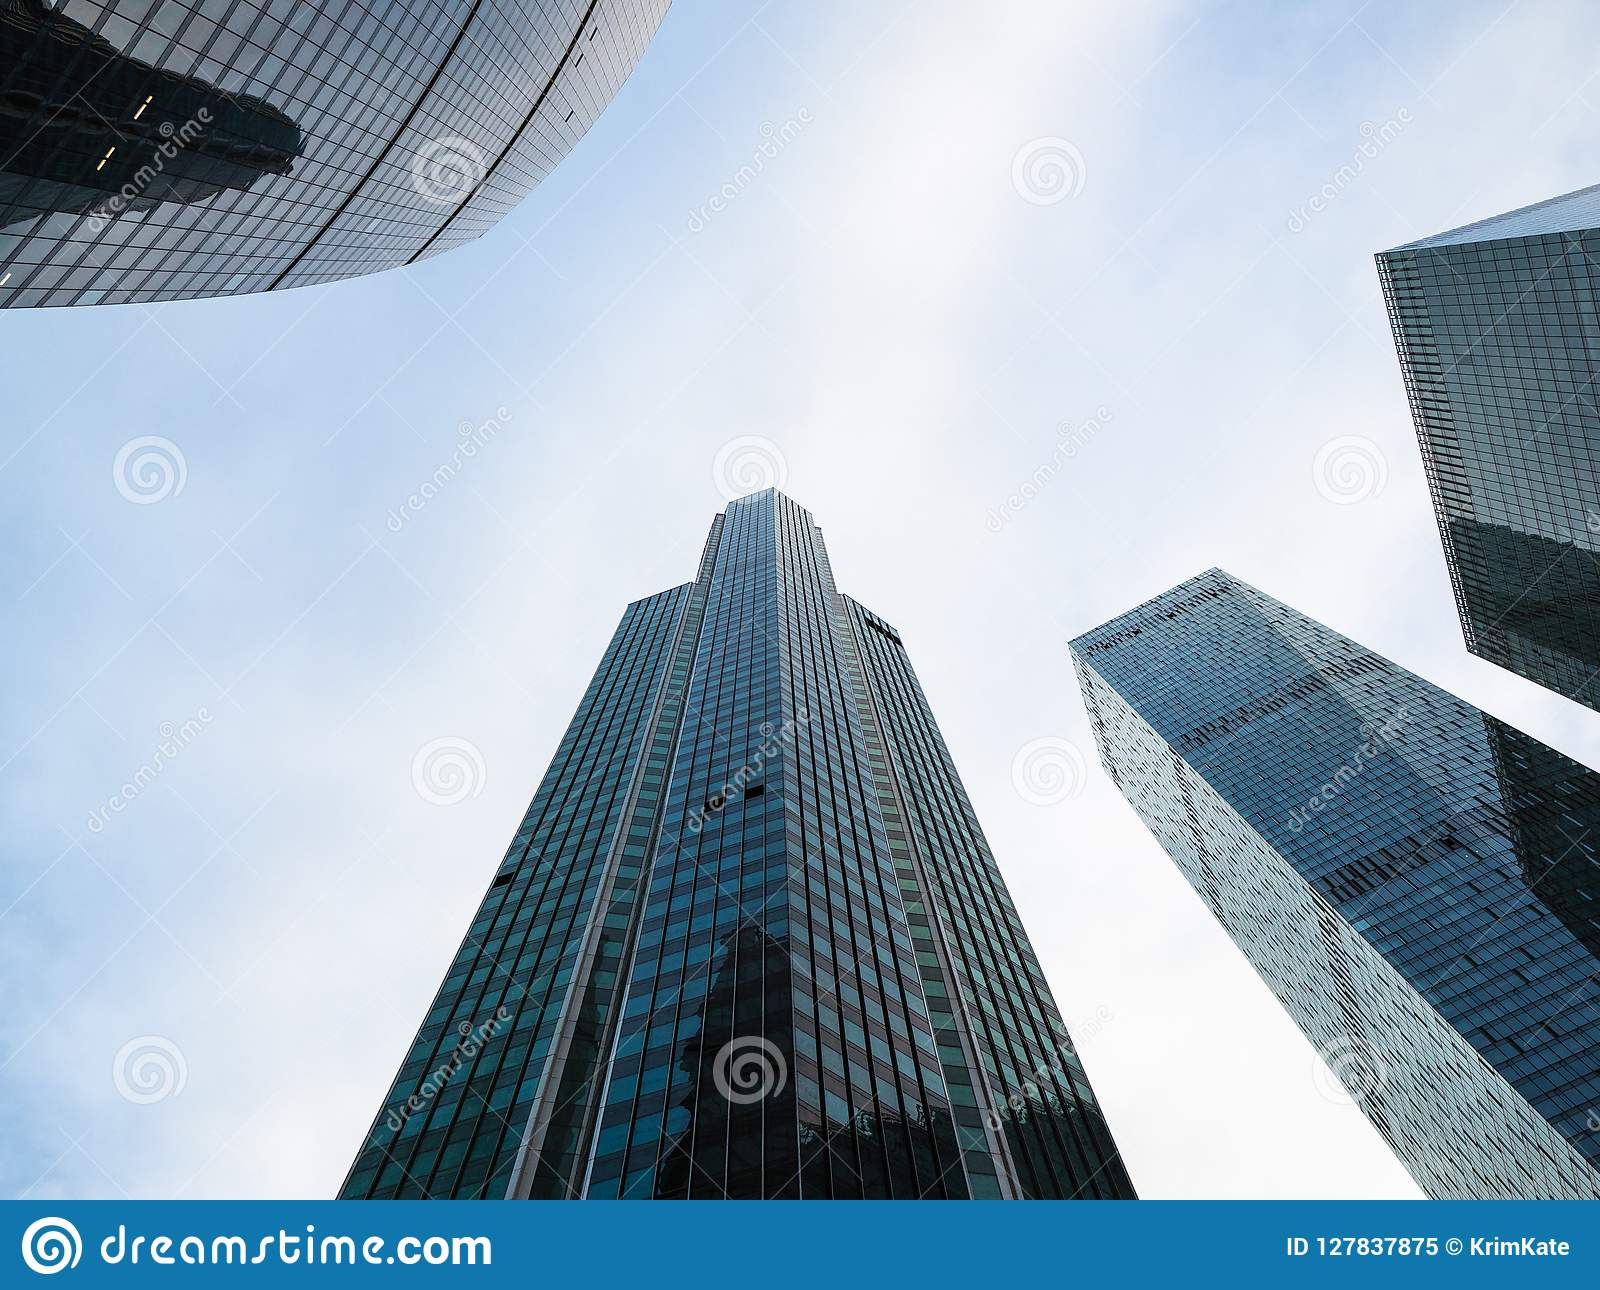 Federation, Eurasia and OKO Towers in Moscow